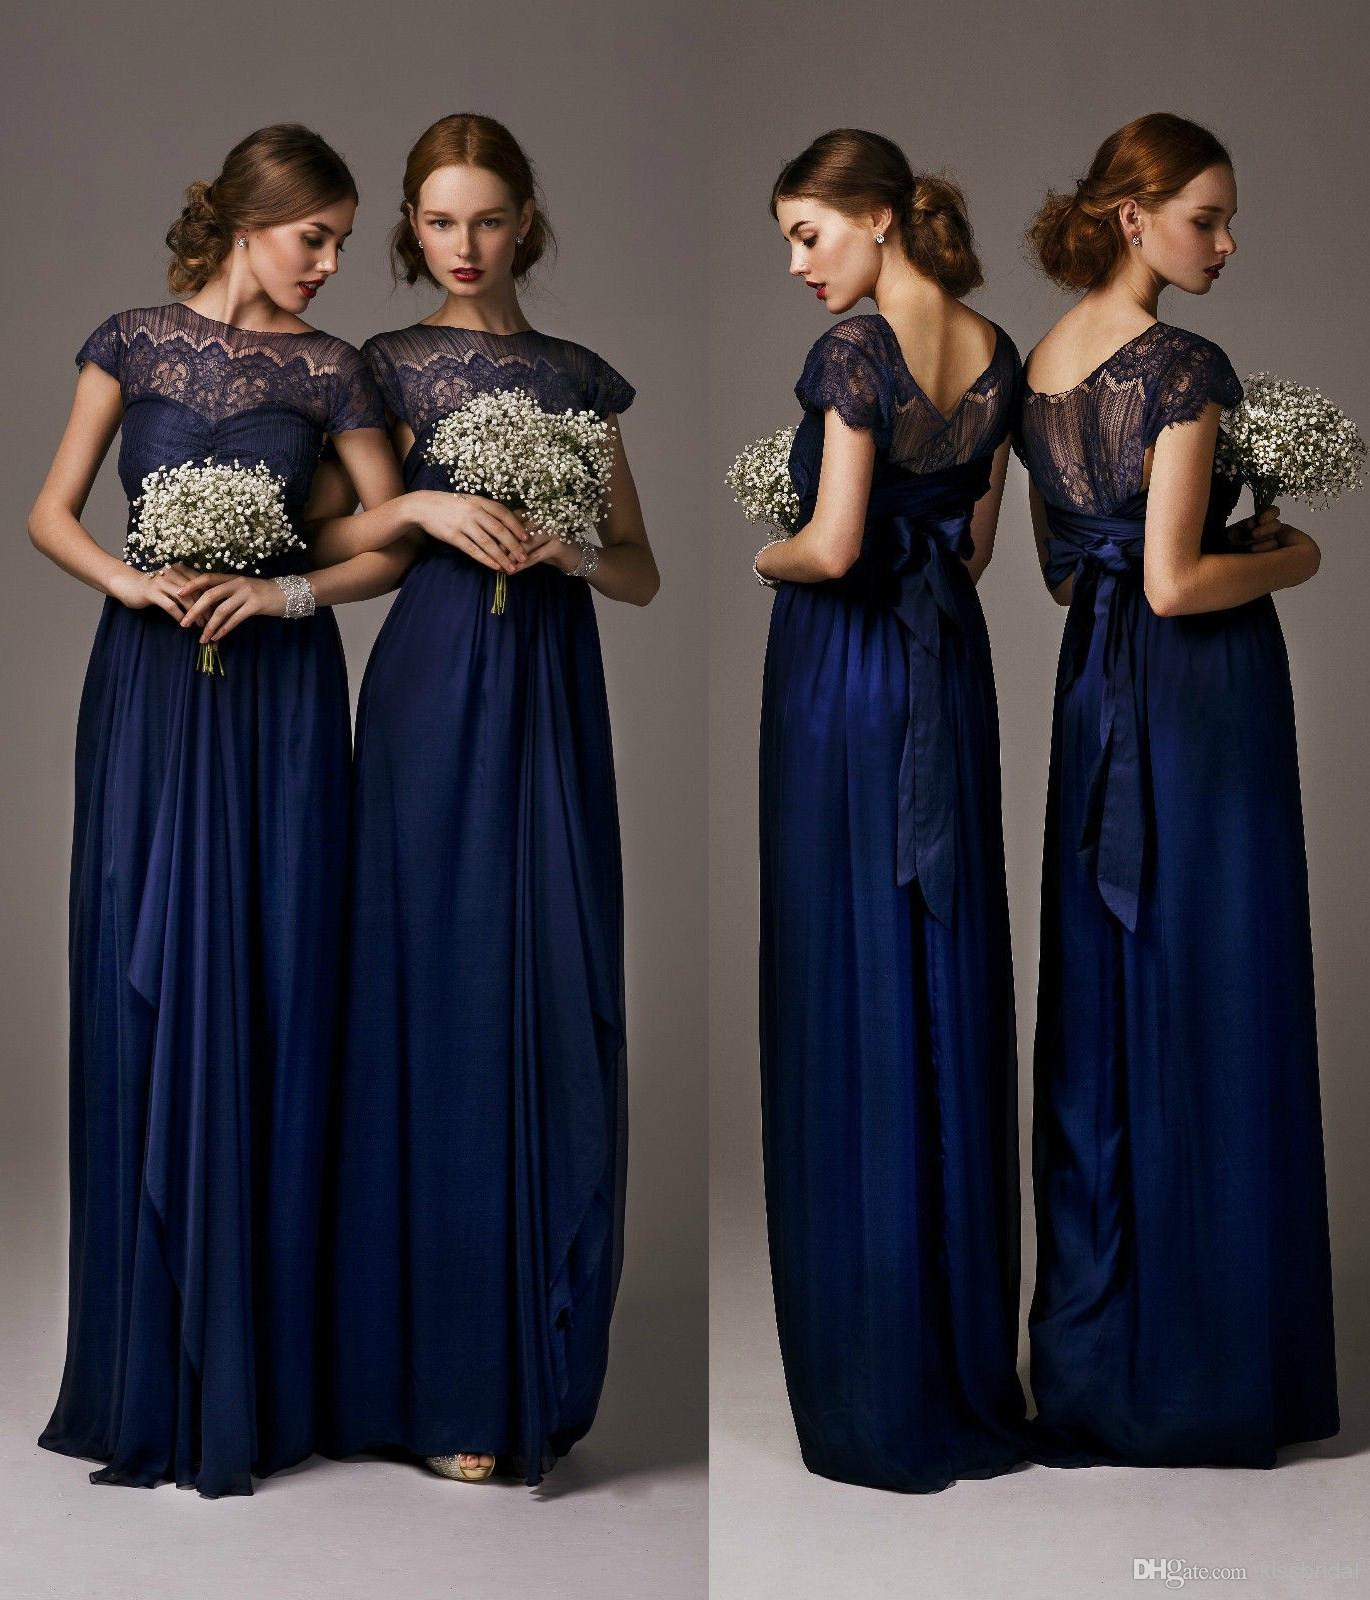 Jcpenney Evening Gowns - Plus Size Masquerade Dresses